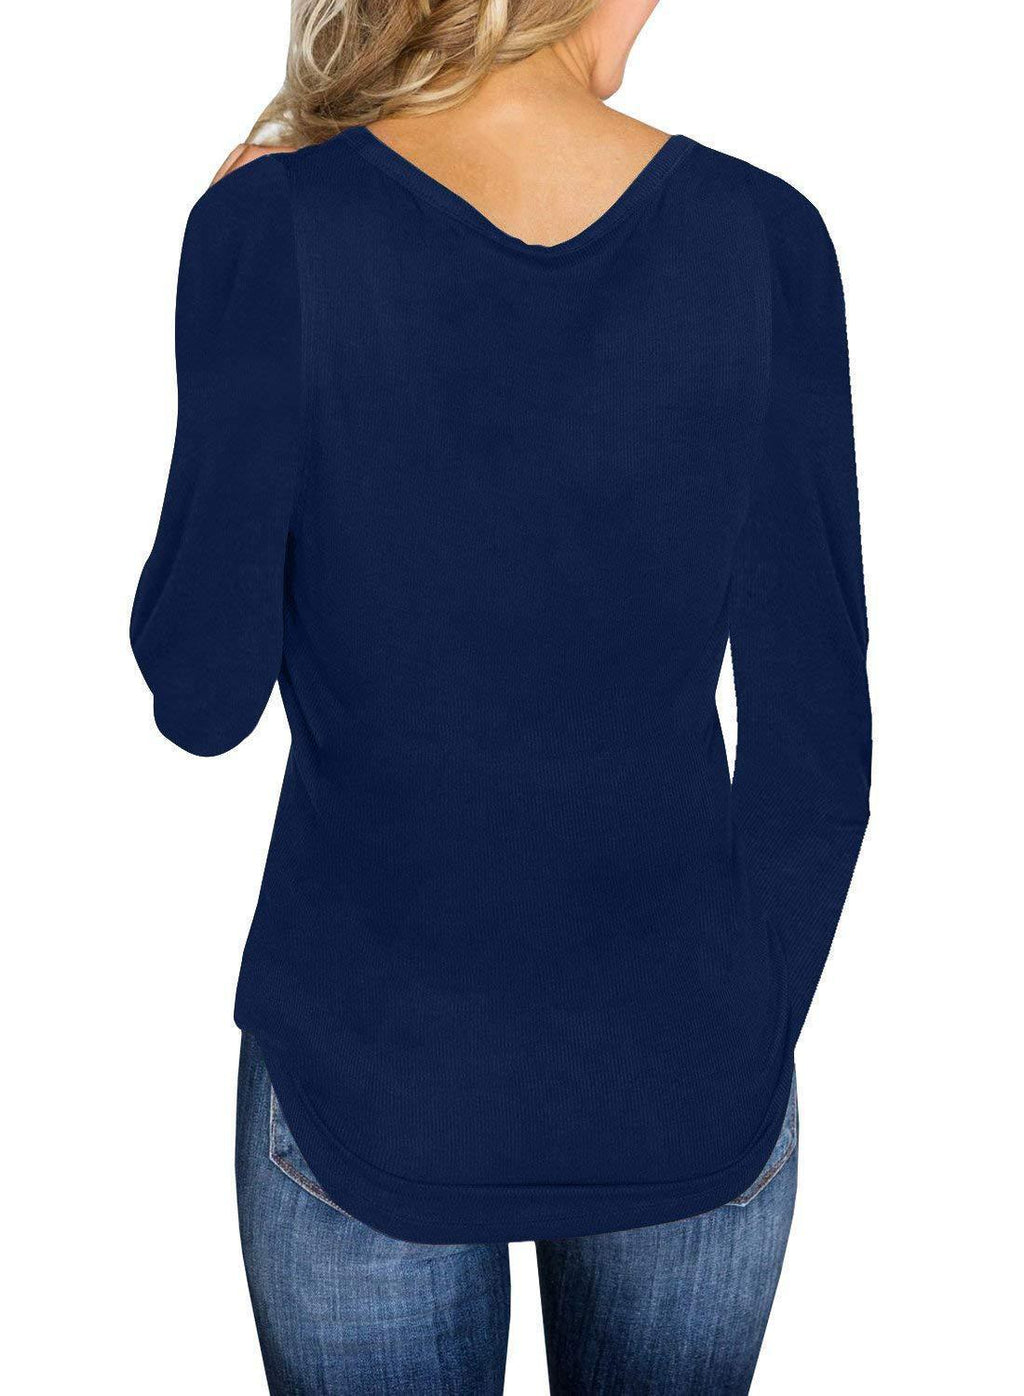 Knit V Neck Solid Long Sleeve Sexy Blouse Top - Popross